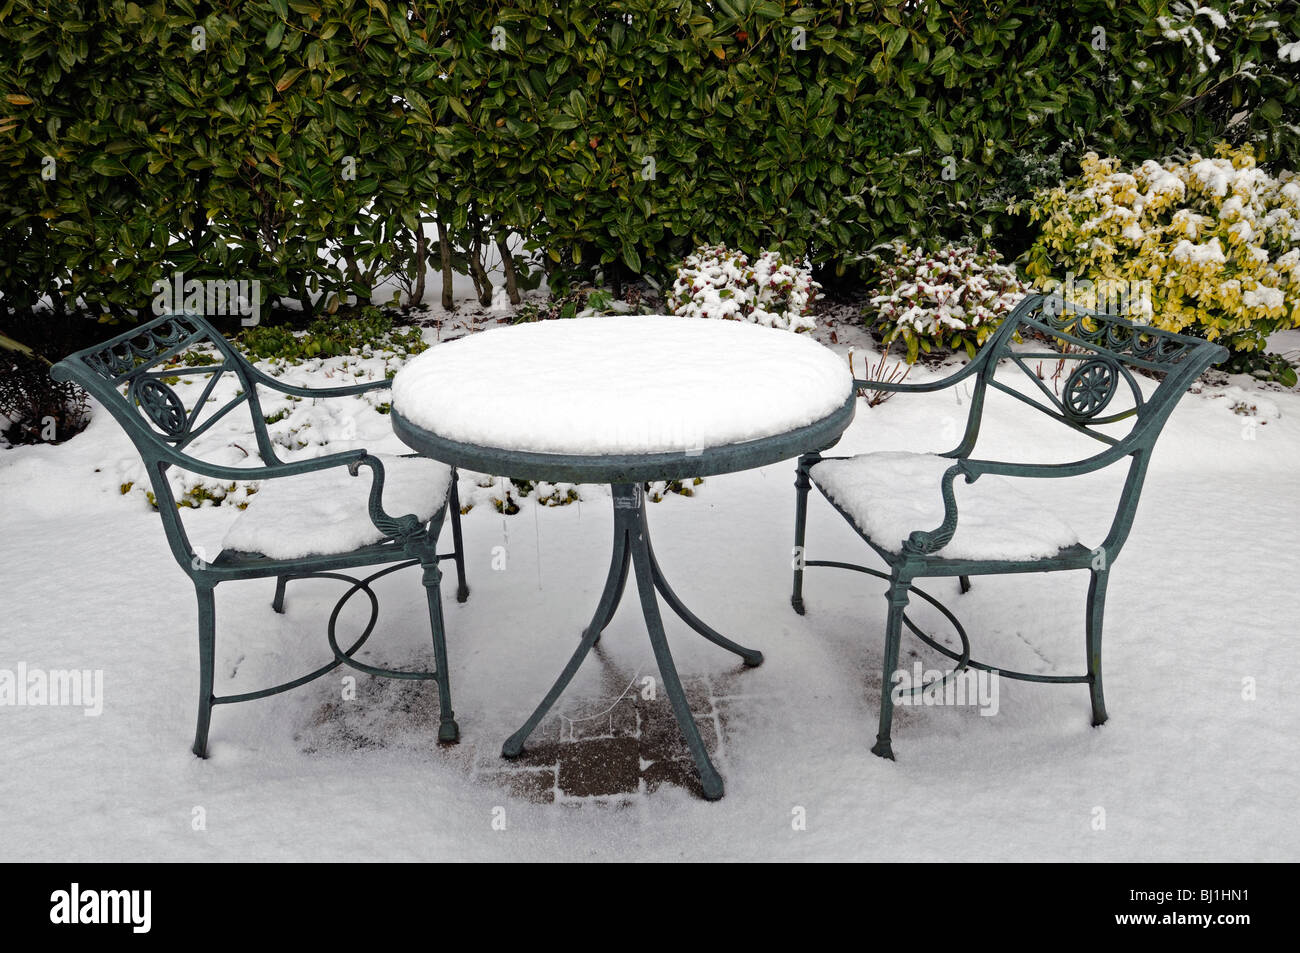 Stock Photo Rustic Wrought Iron Garden Seat Table Cover Covered With Snow Winter Wonderland Gardening Scene Scenic